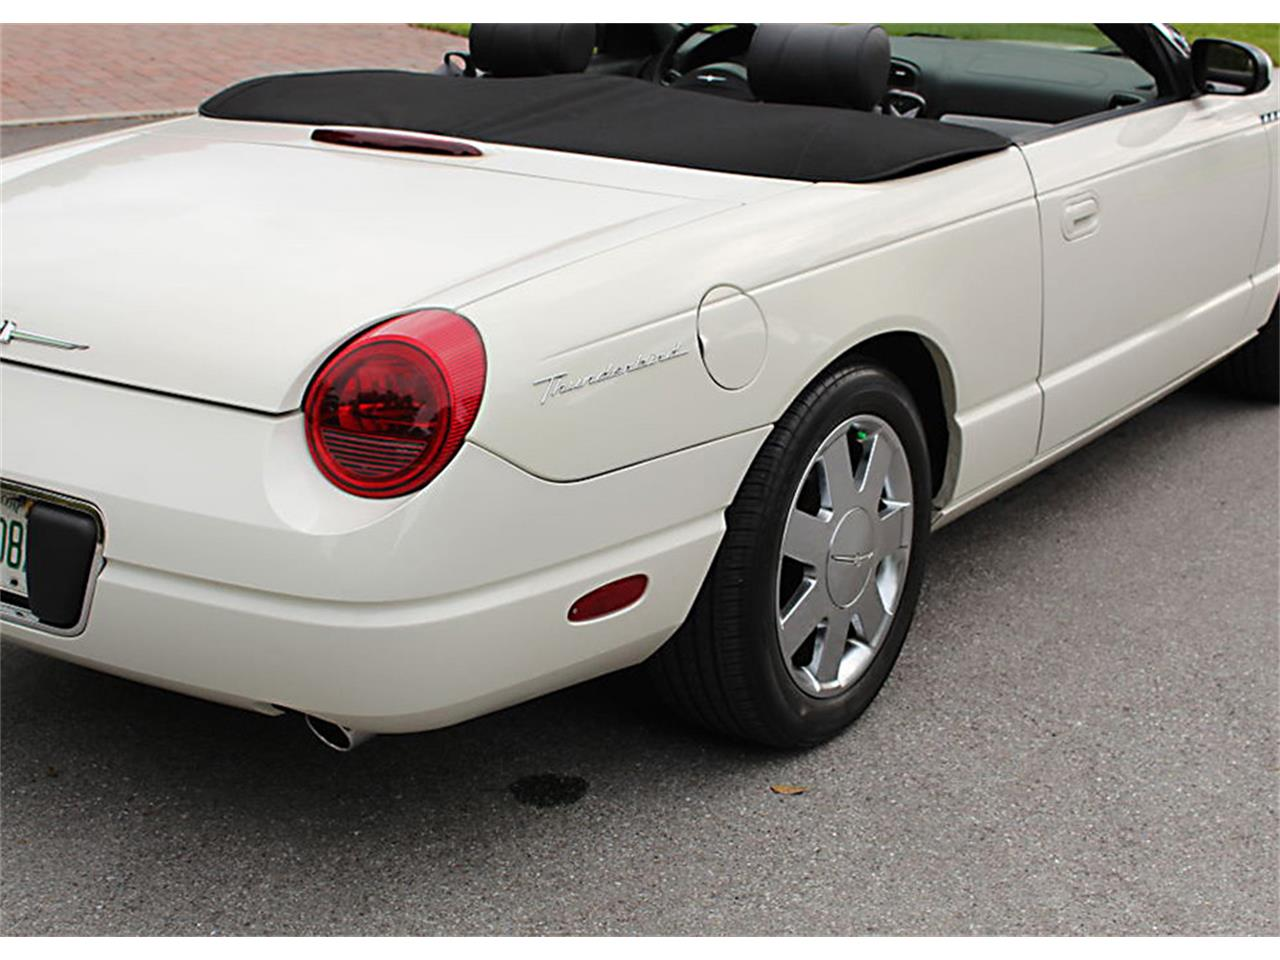 2002 Ford Thunderbird (CC-1203411) for sale in Lakeland, Florida